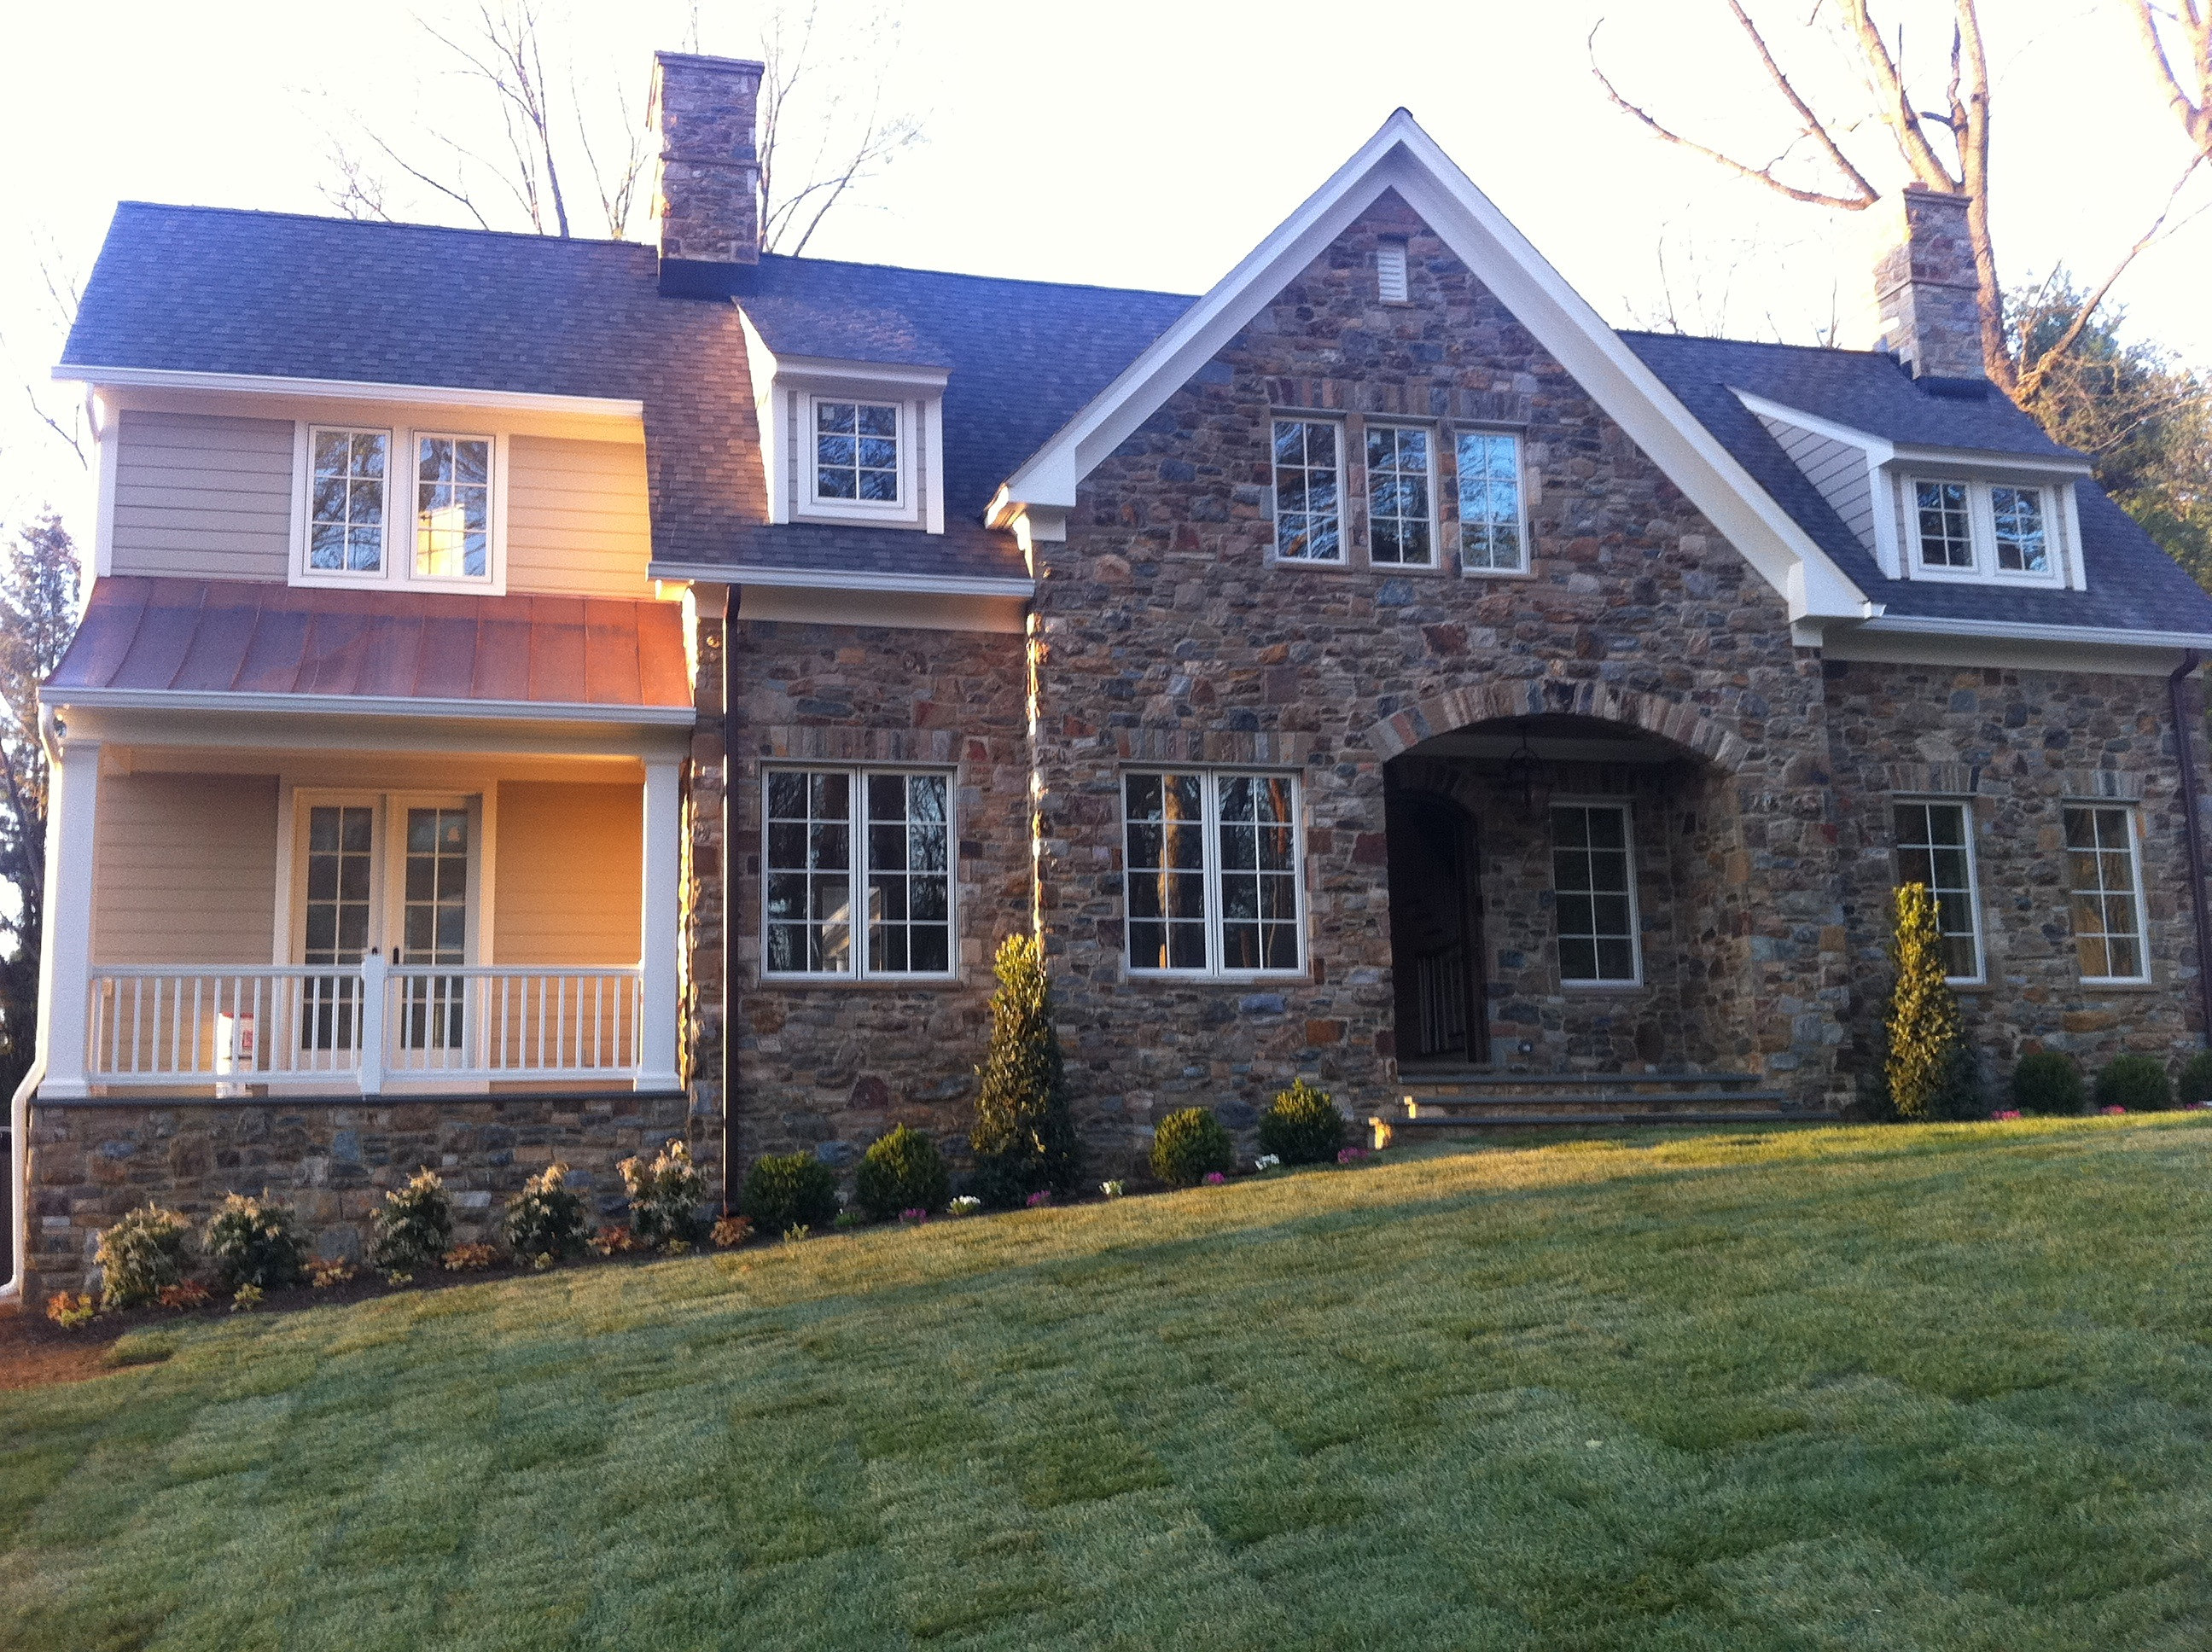 Arma Gesch Building Baltimore Maryland Custom Home